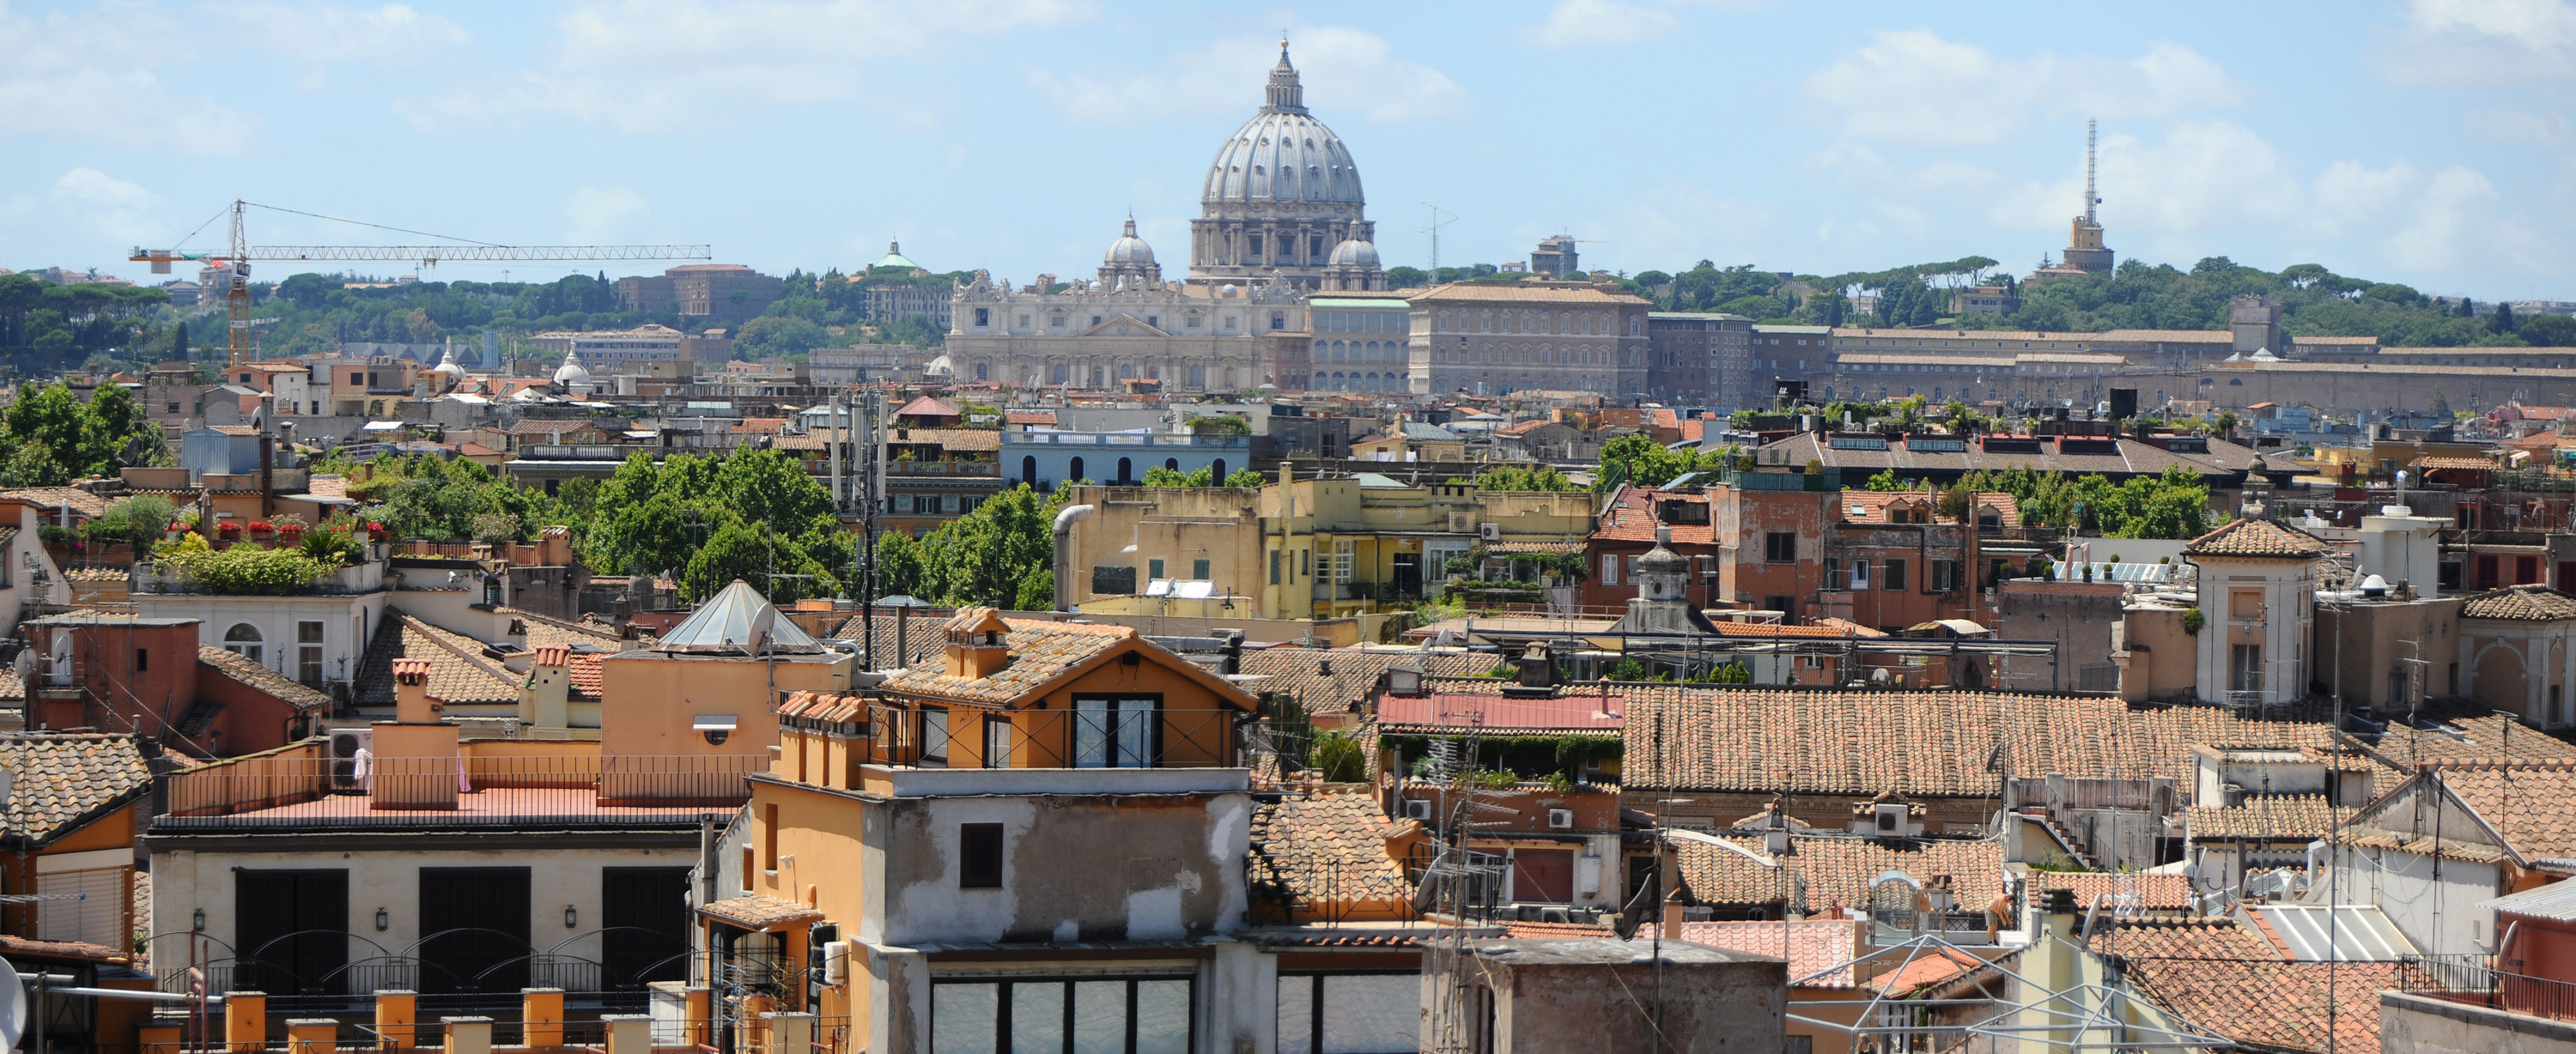 FilePanoramic view of Rome with St Peters Basilica